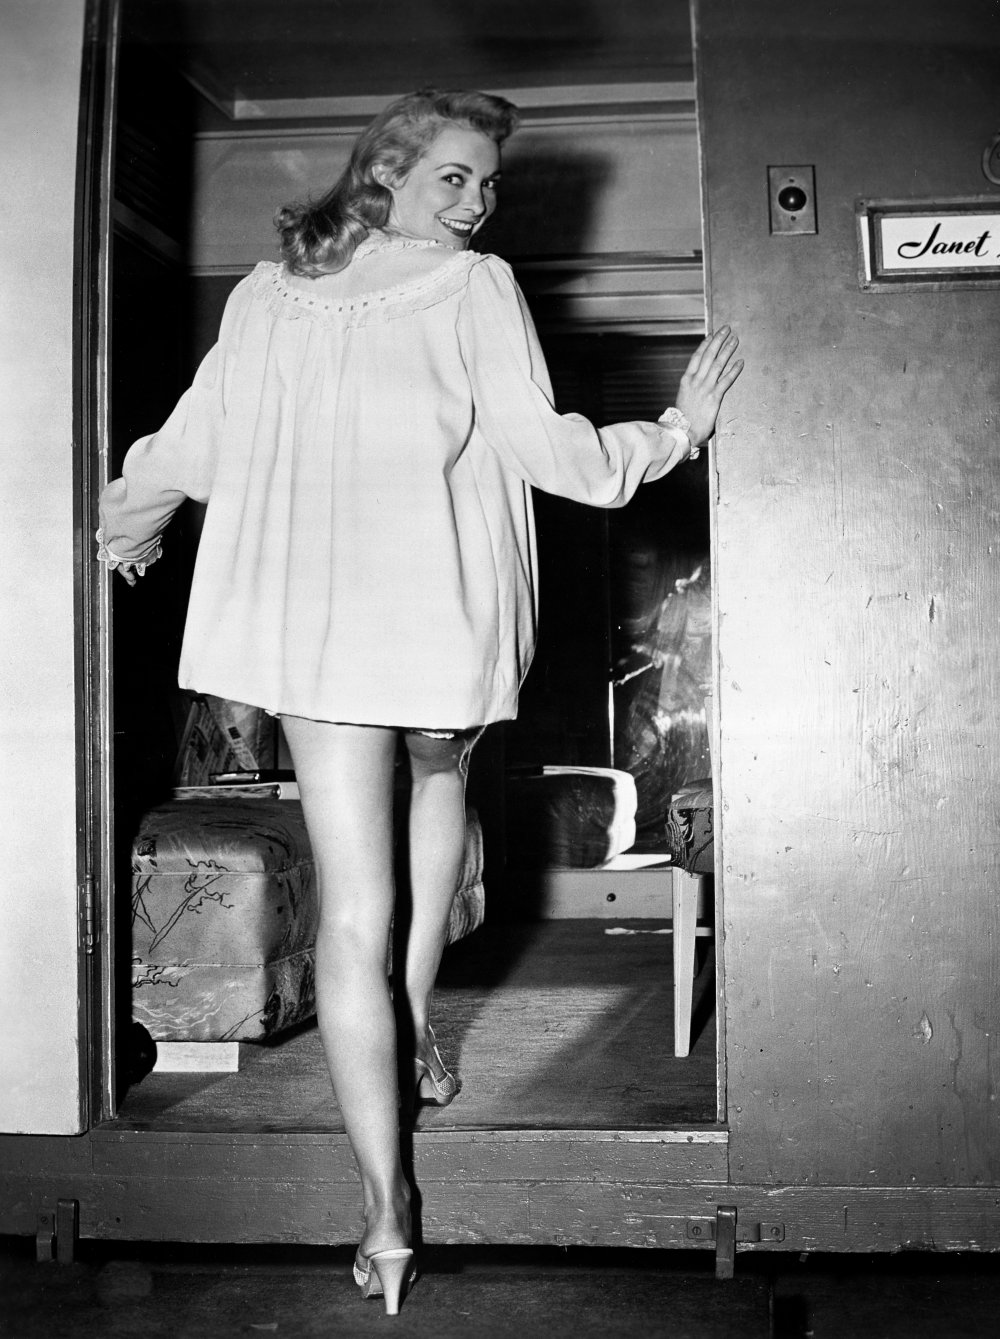 Leigh returning to her trailer wearing the nightwear she wears in the scene in which she is menaced in a lonely Mexican motel. Two years later, she would be the subject of an even more terrifying motel attack, in Alfred Hitchcock's Psycho (1960)